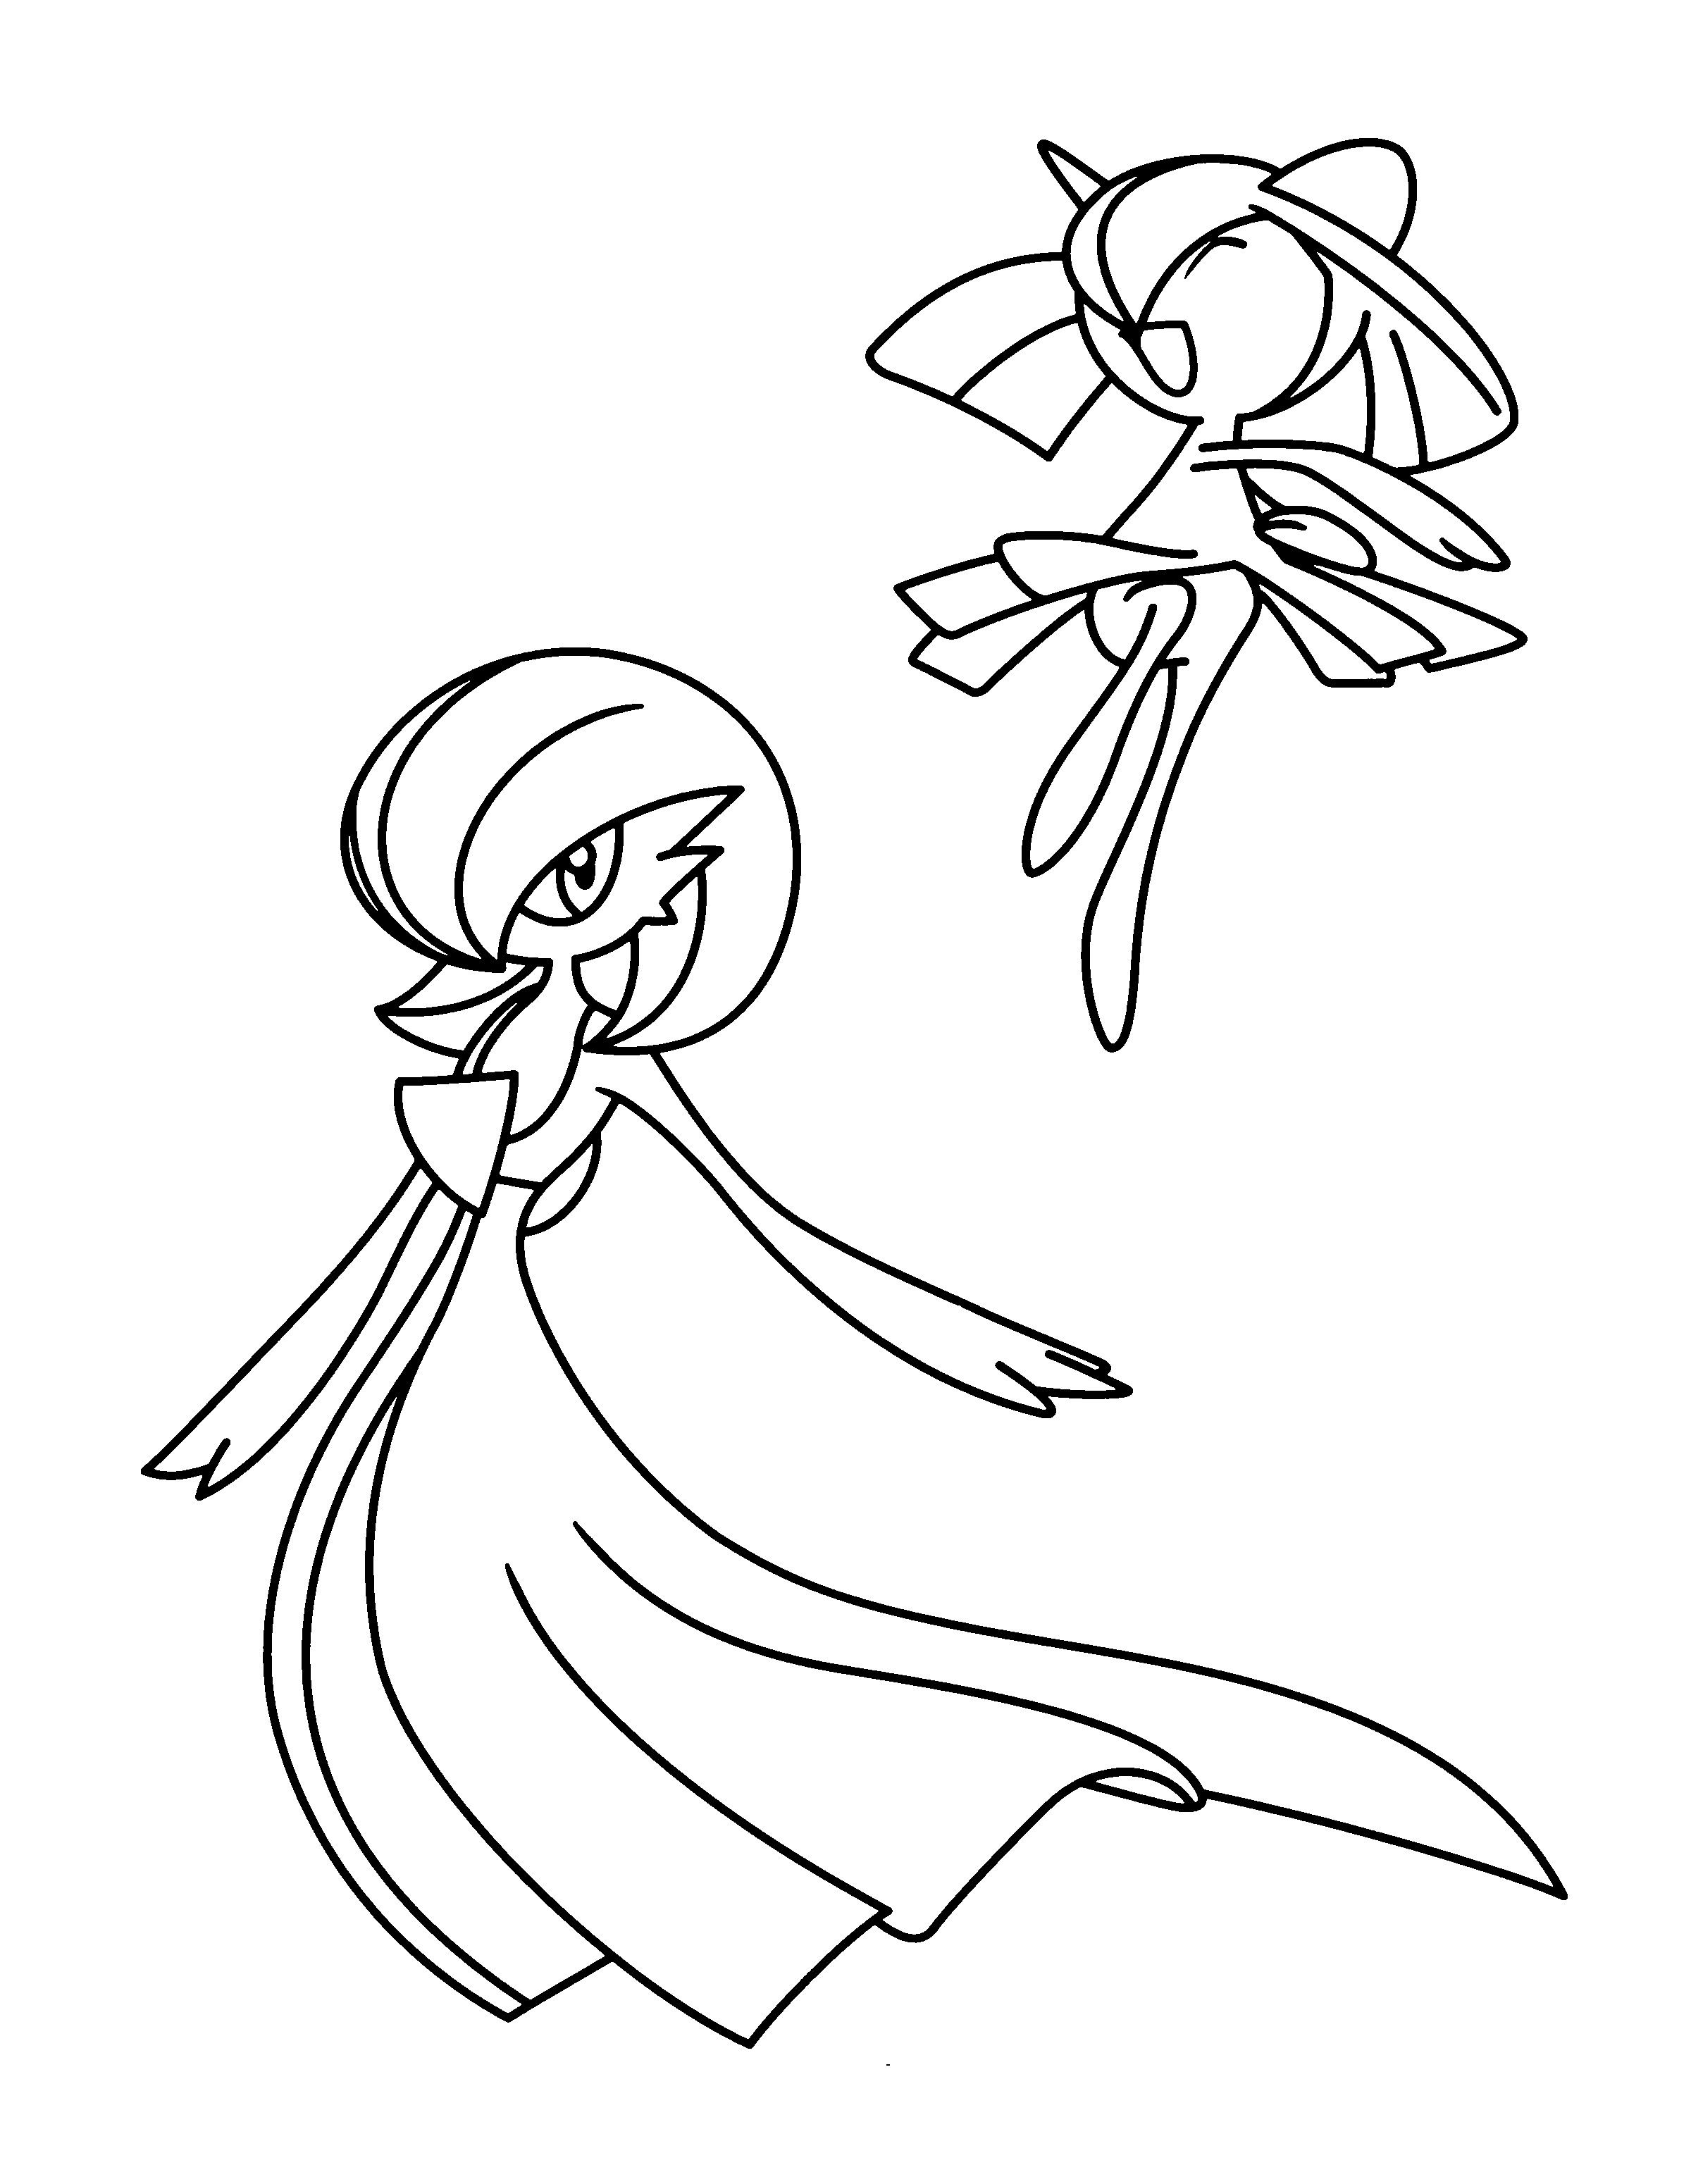 Pokemon Coloring Pages Gardevoir From the thousands of